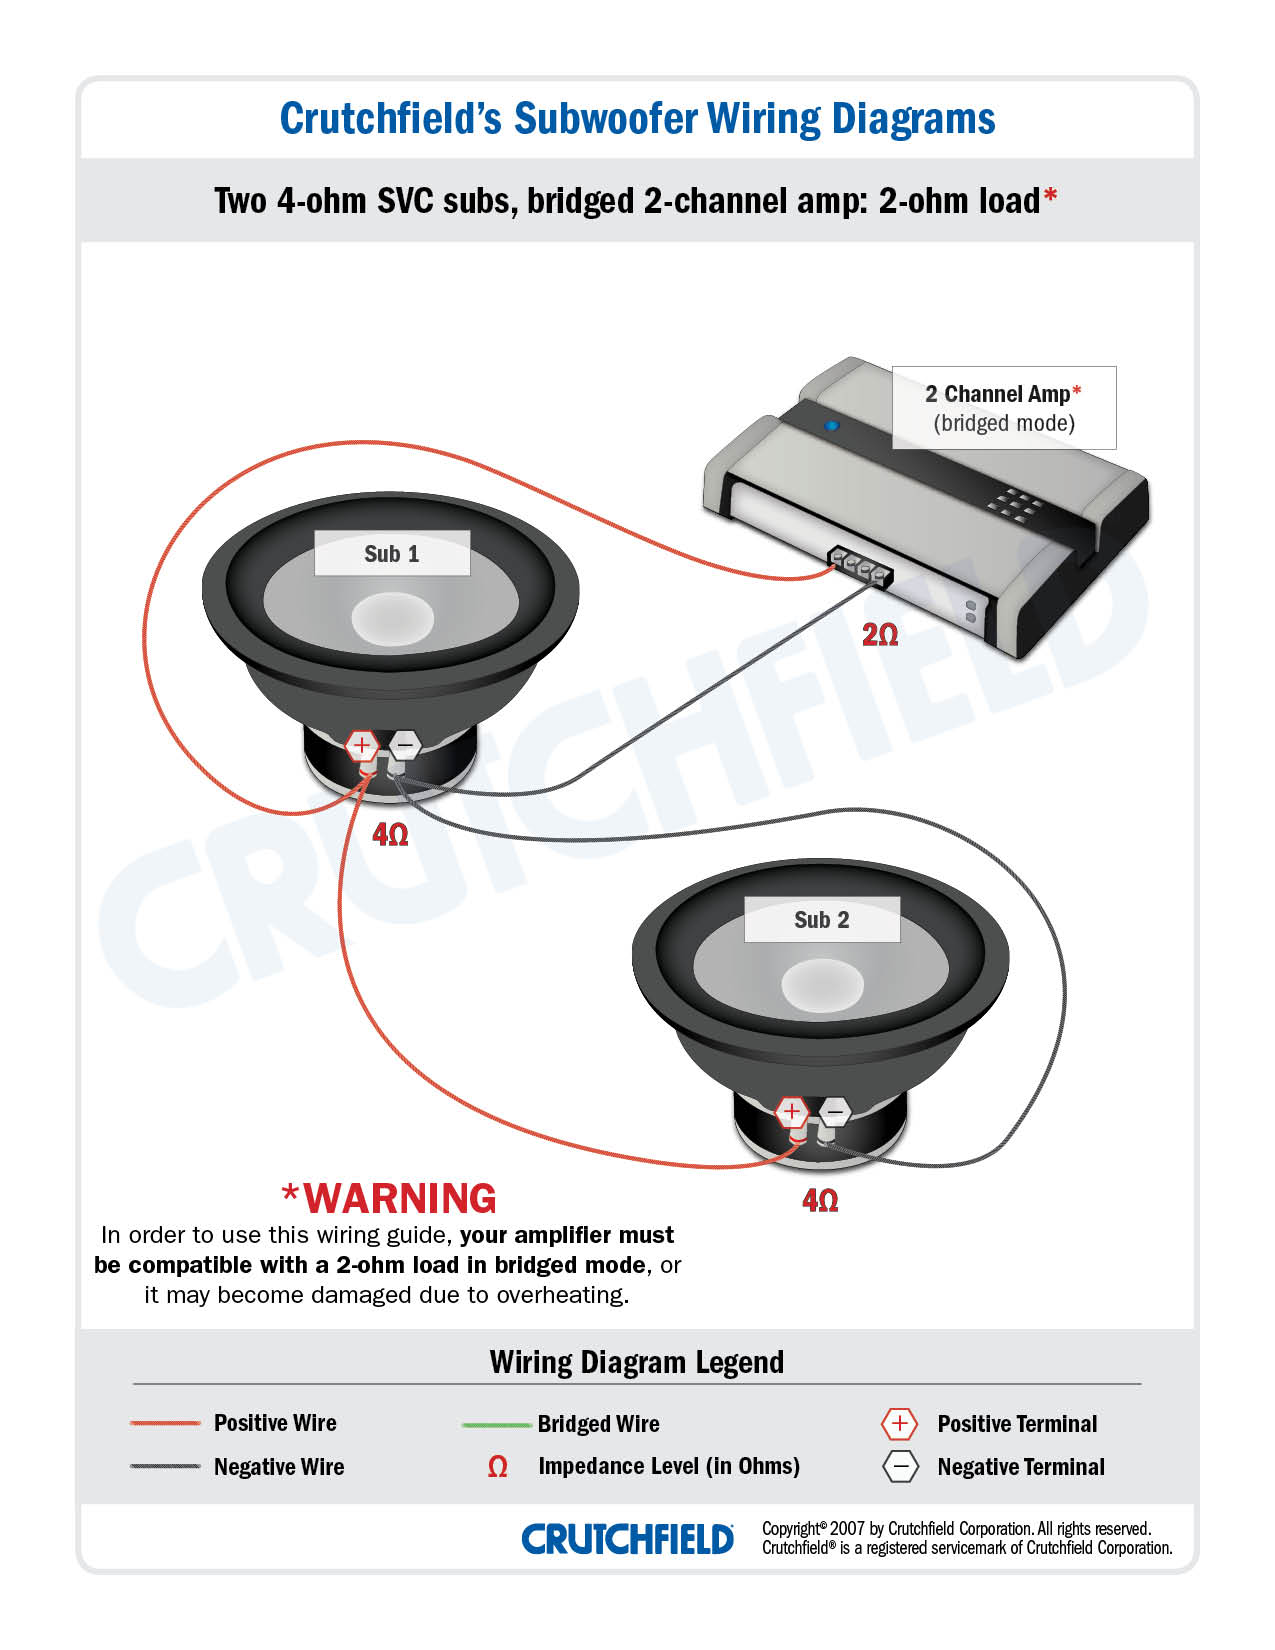 Subwoofer Wiring Diagram Dual 2 Ohm: Subwoofer wiring diagrams,